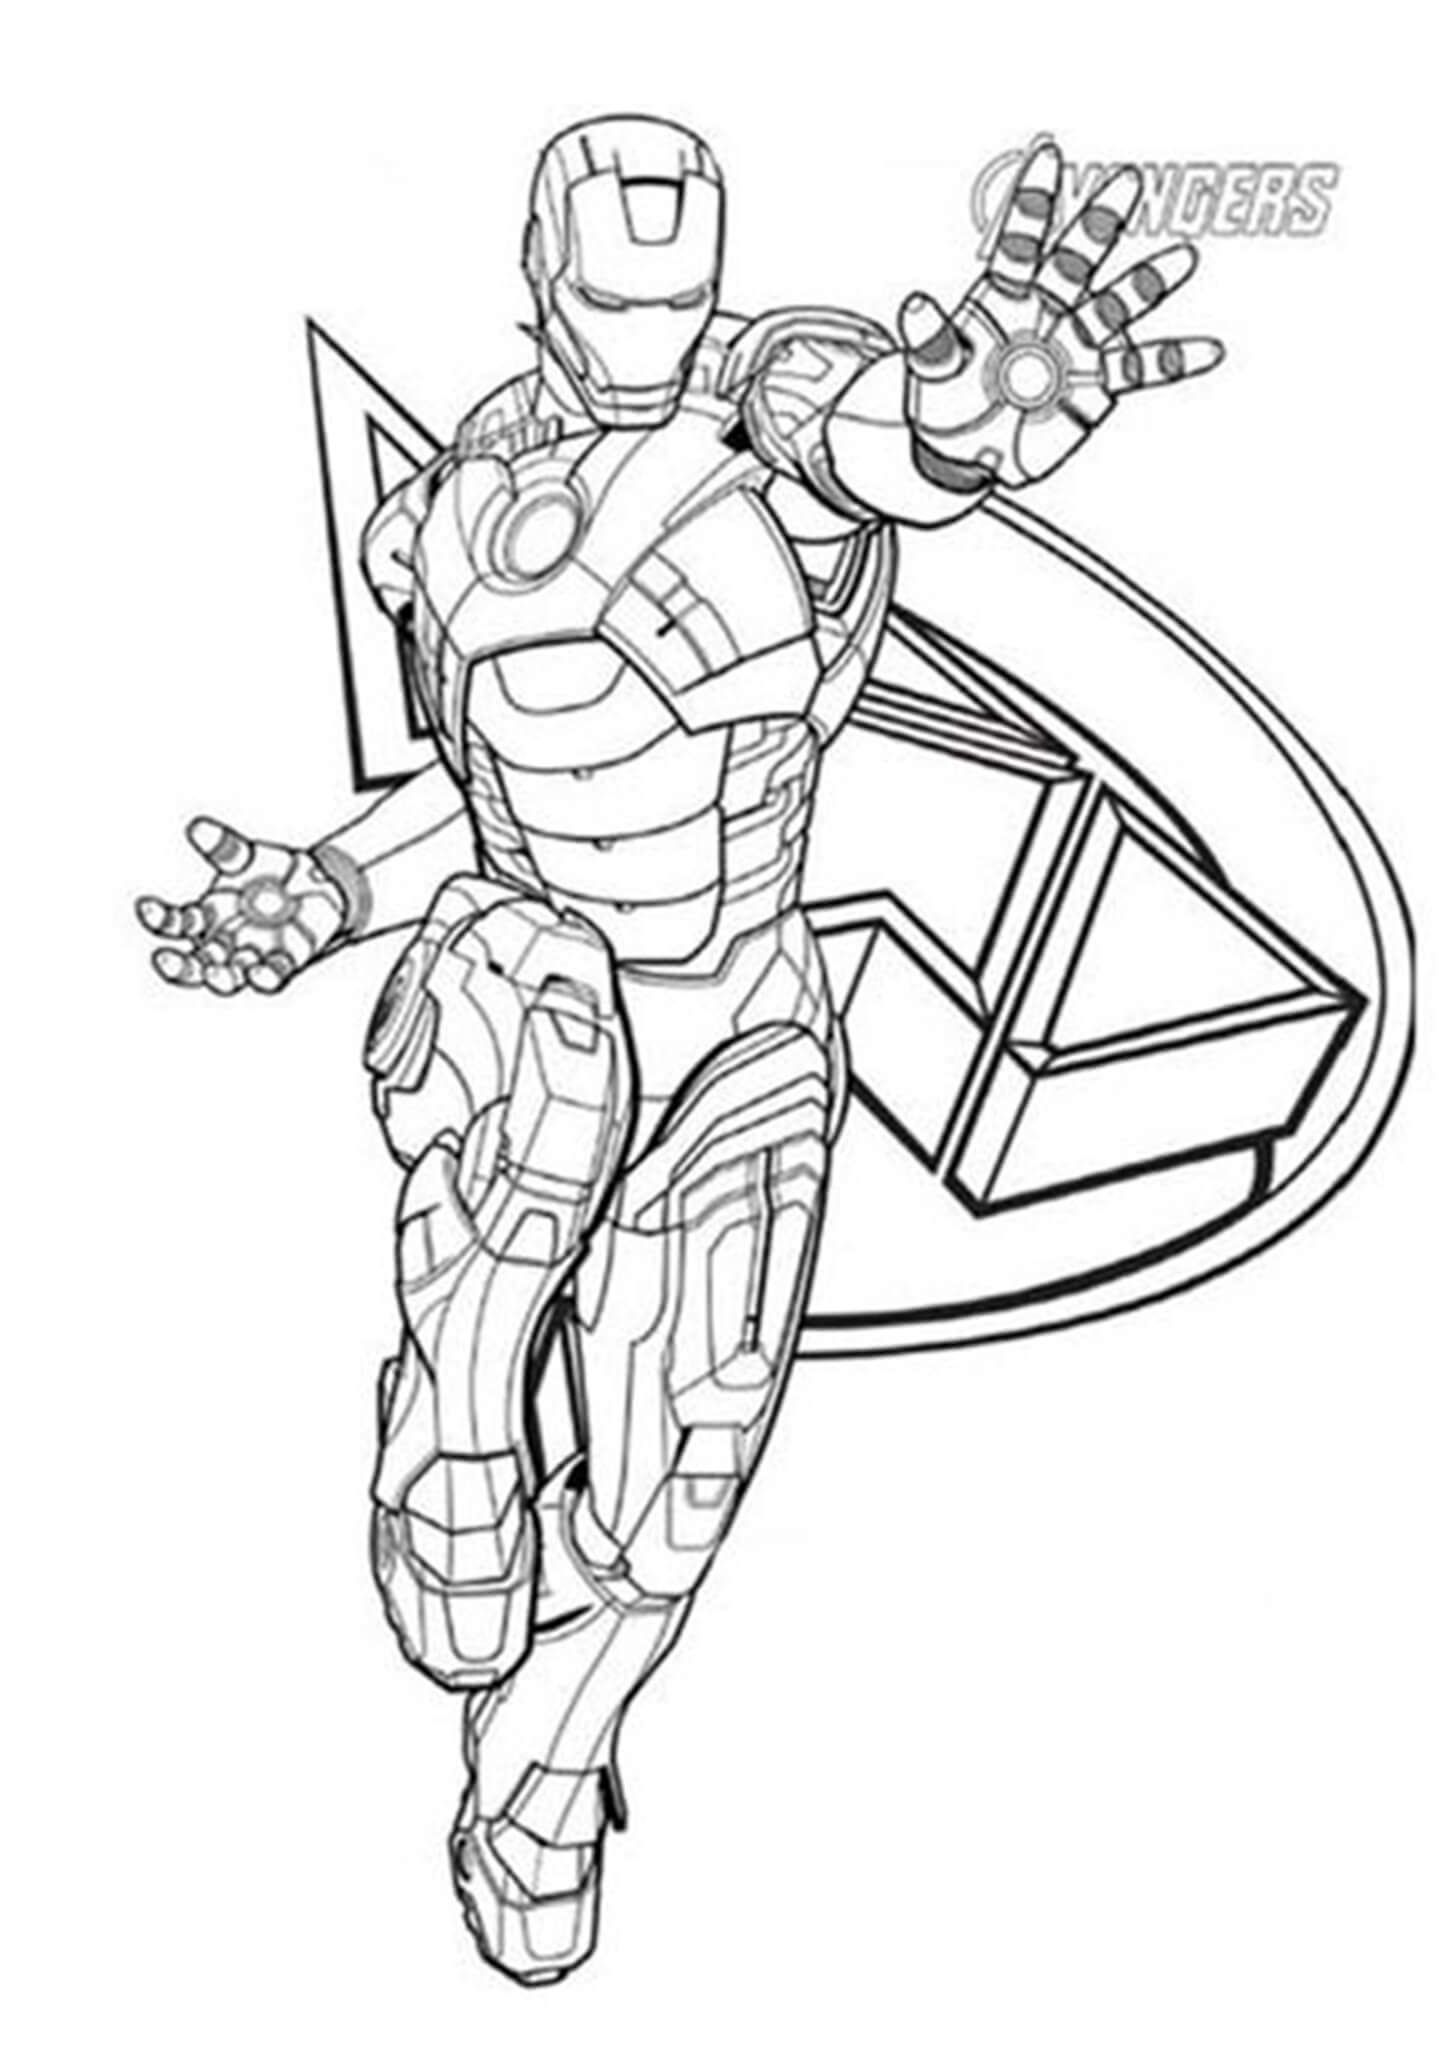 Free Easy To Print Iron Man Coloring Pages Coloring Pages Iron Man Drawing Superhero Coloring Pages